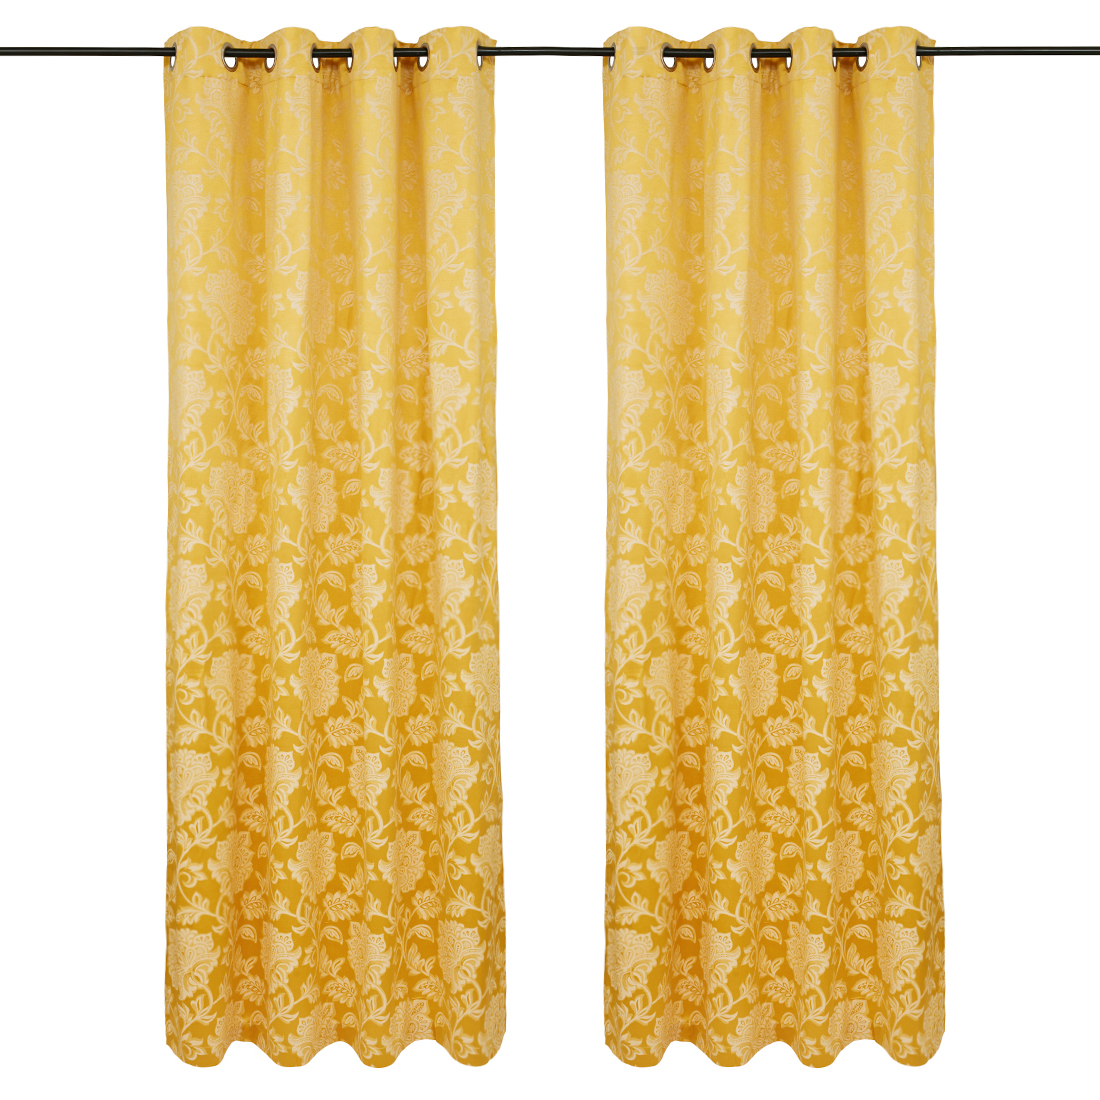 Fiesta Jacquard set of 2 Polyester Door Curtains in Mustard Colour by Living Essence